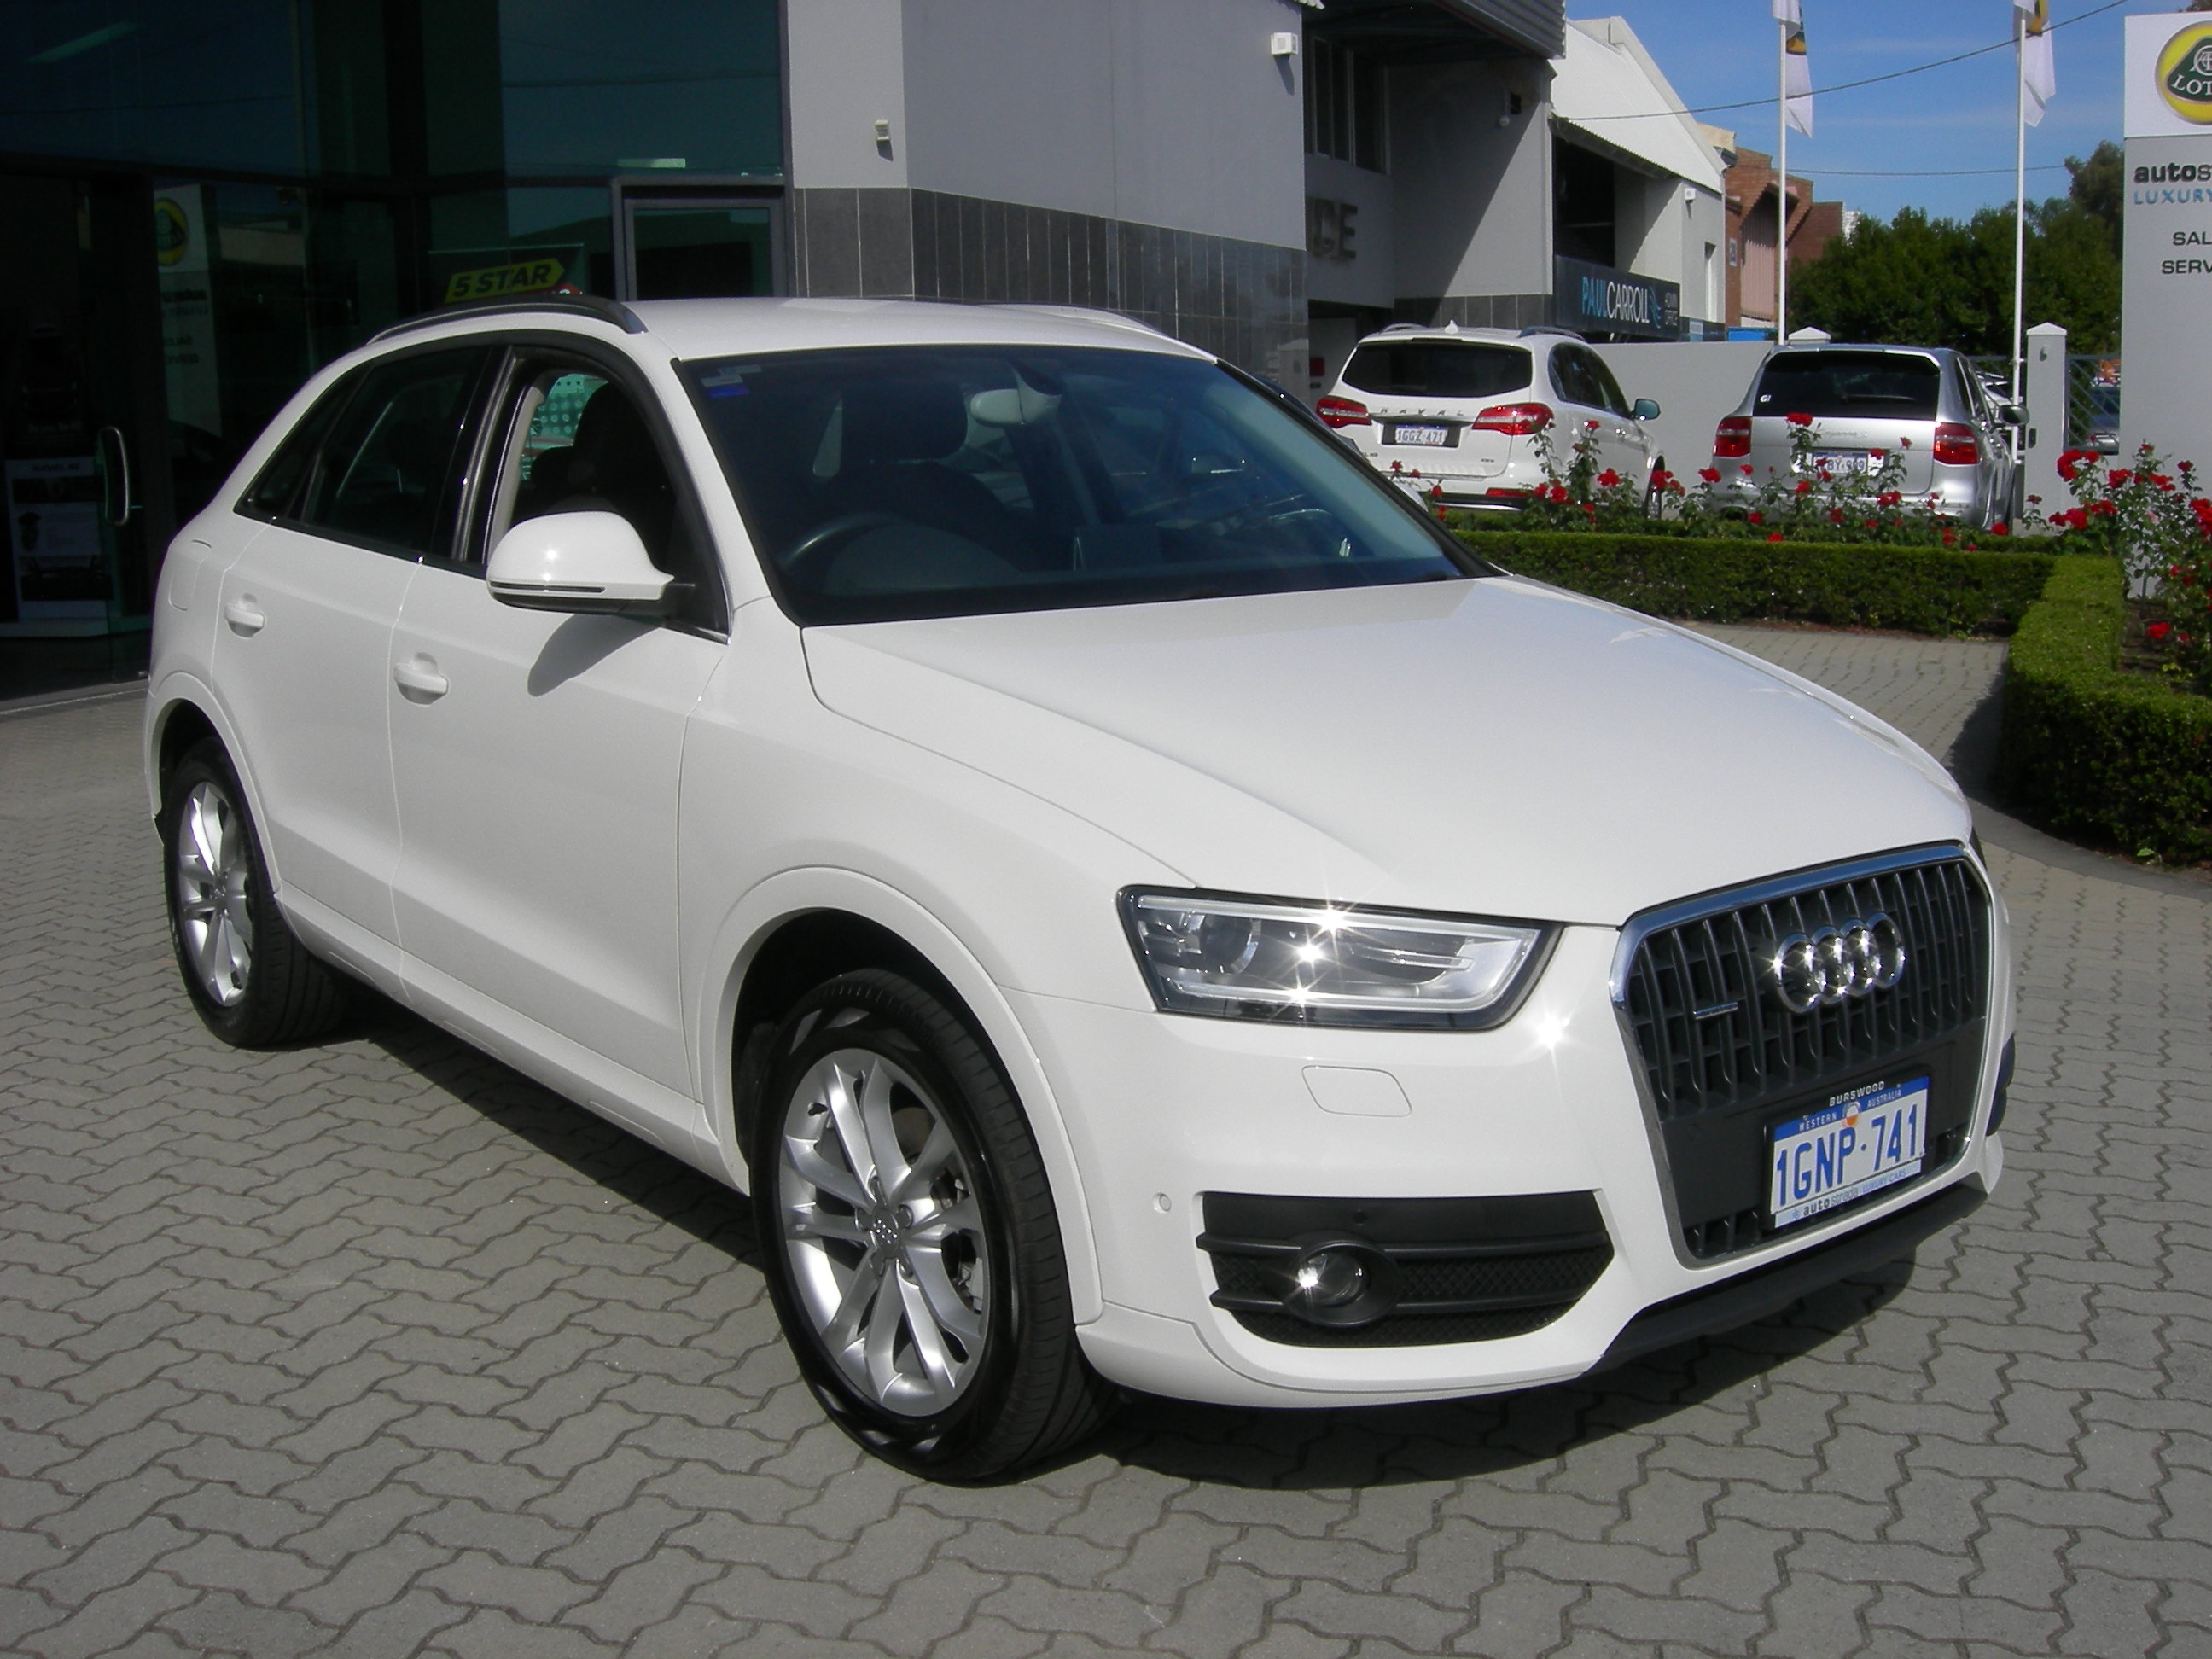 AUDI Q3 TDI Quattro for sale Perth